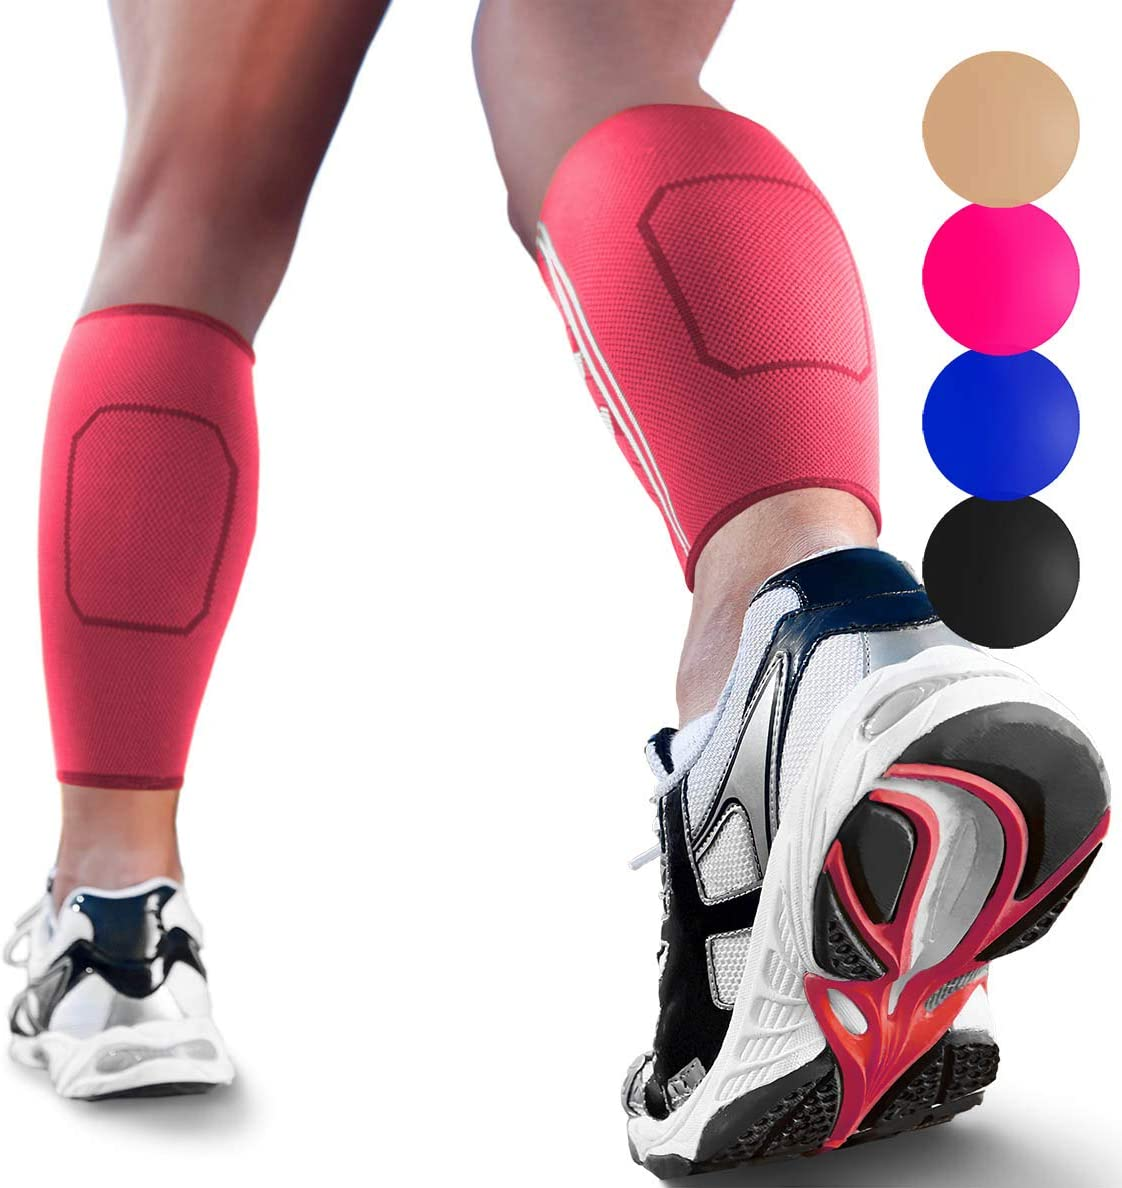 Calf Compression Sleeves by SPARTHOS Leg Compression Socks for Men and Women Black-L Pair Shin Splint Calf Pain Relief Calf Medical Leg Pain and Cramps Recovery Varicose Veins